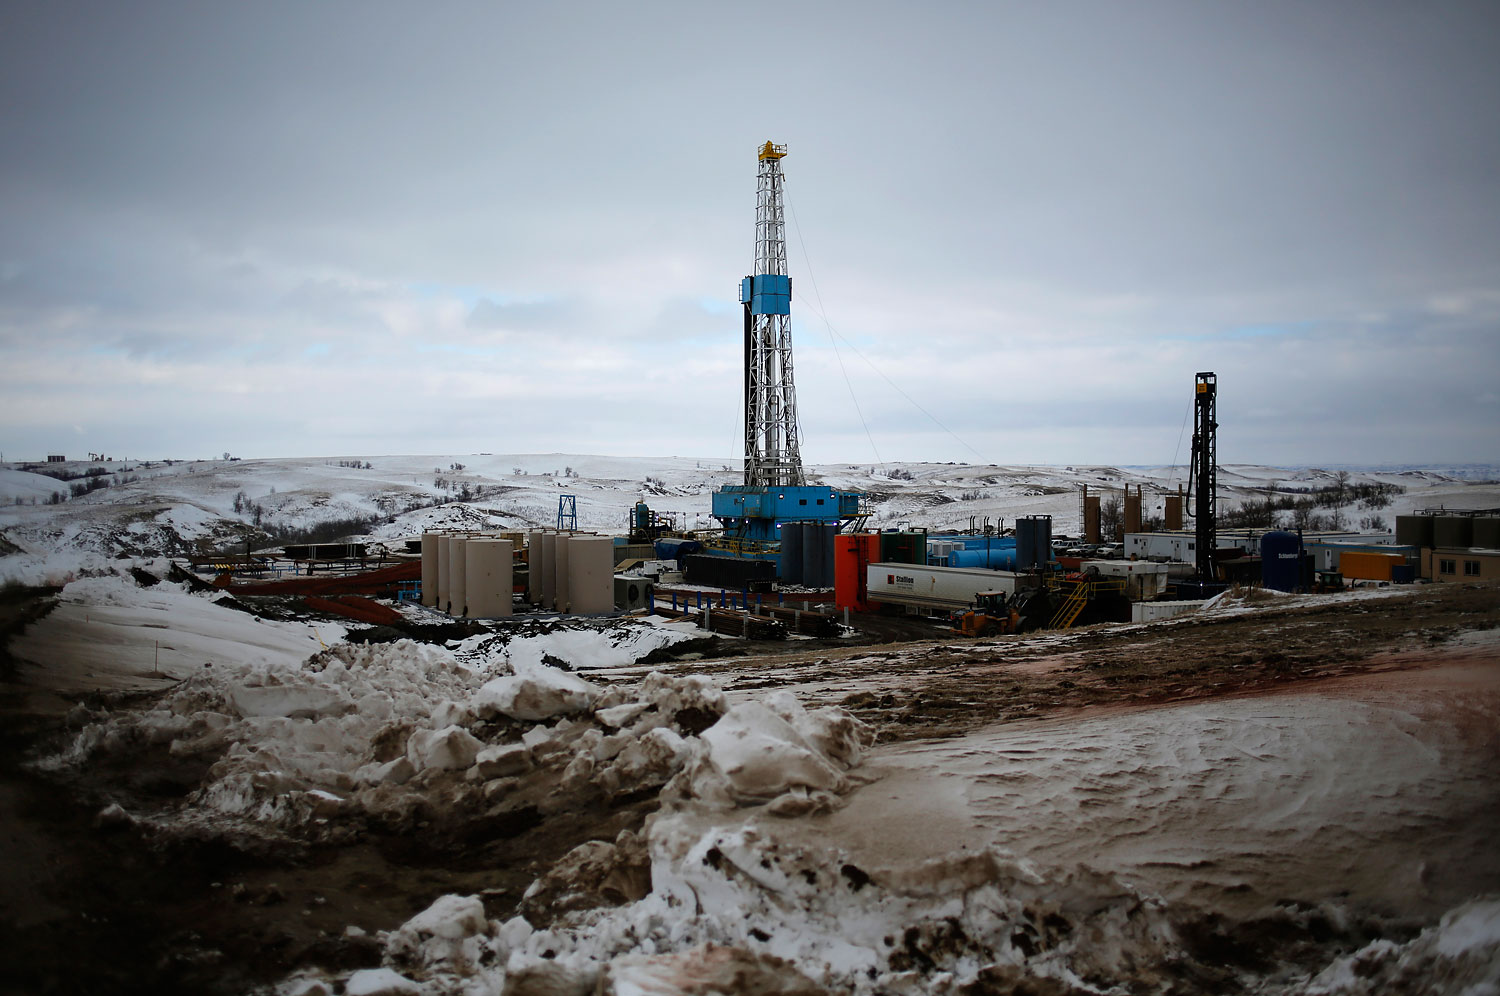 An oil derrick is seen at a fracking site for extracting oil outside of Williston, North Dakota March 11, 2013.